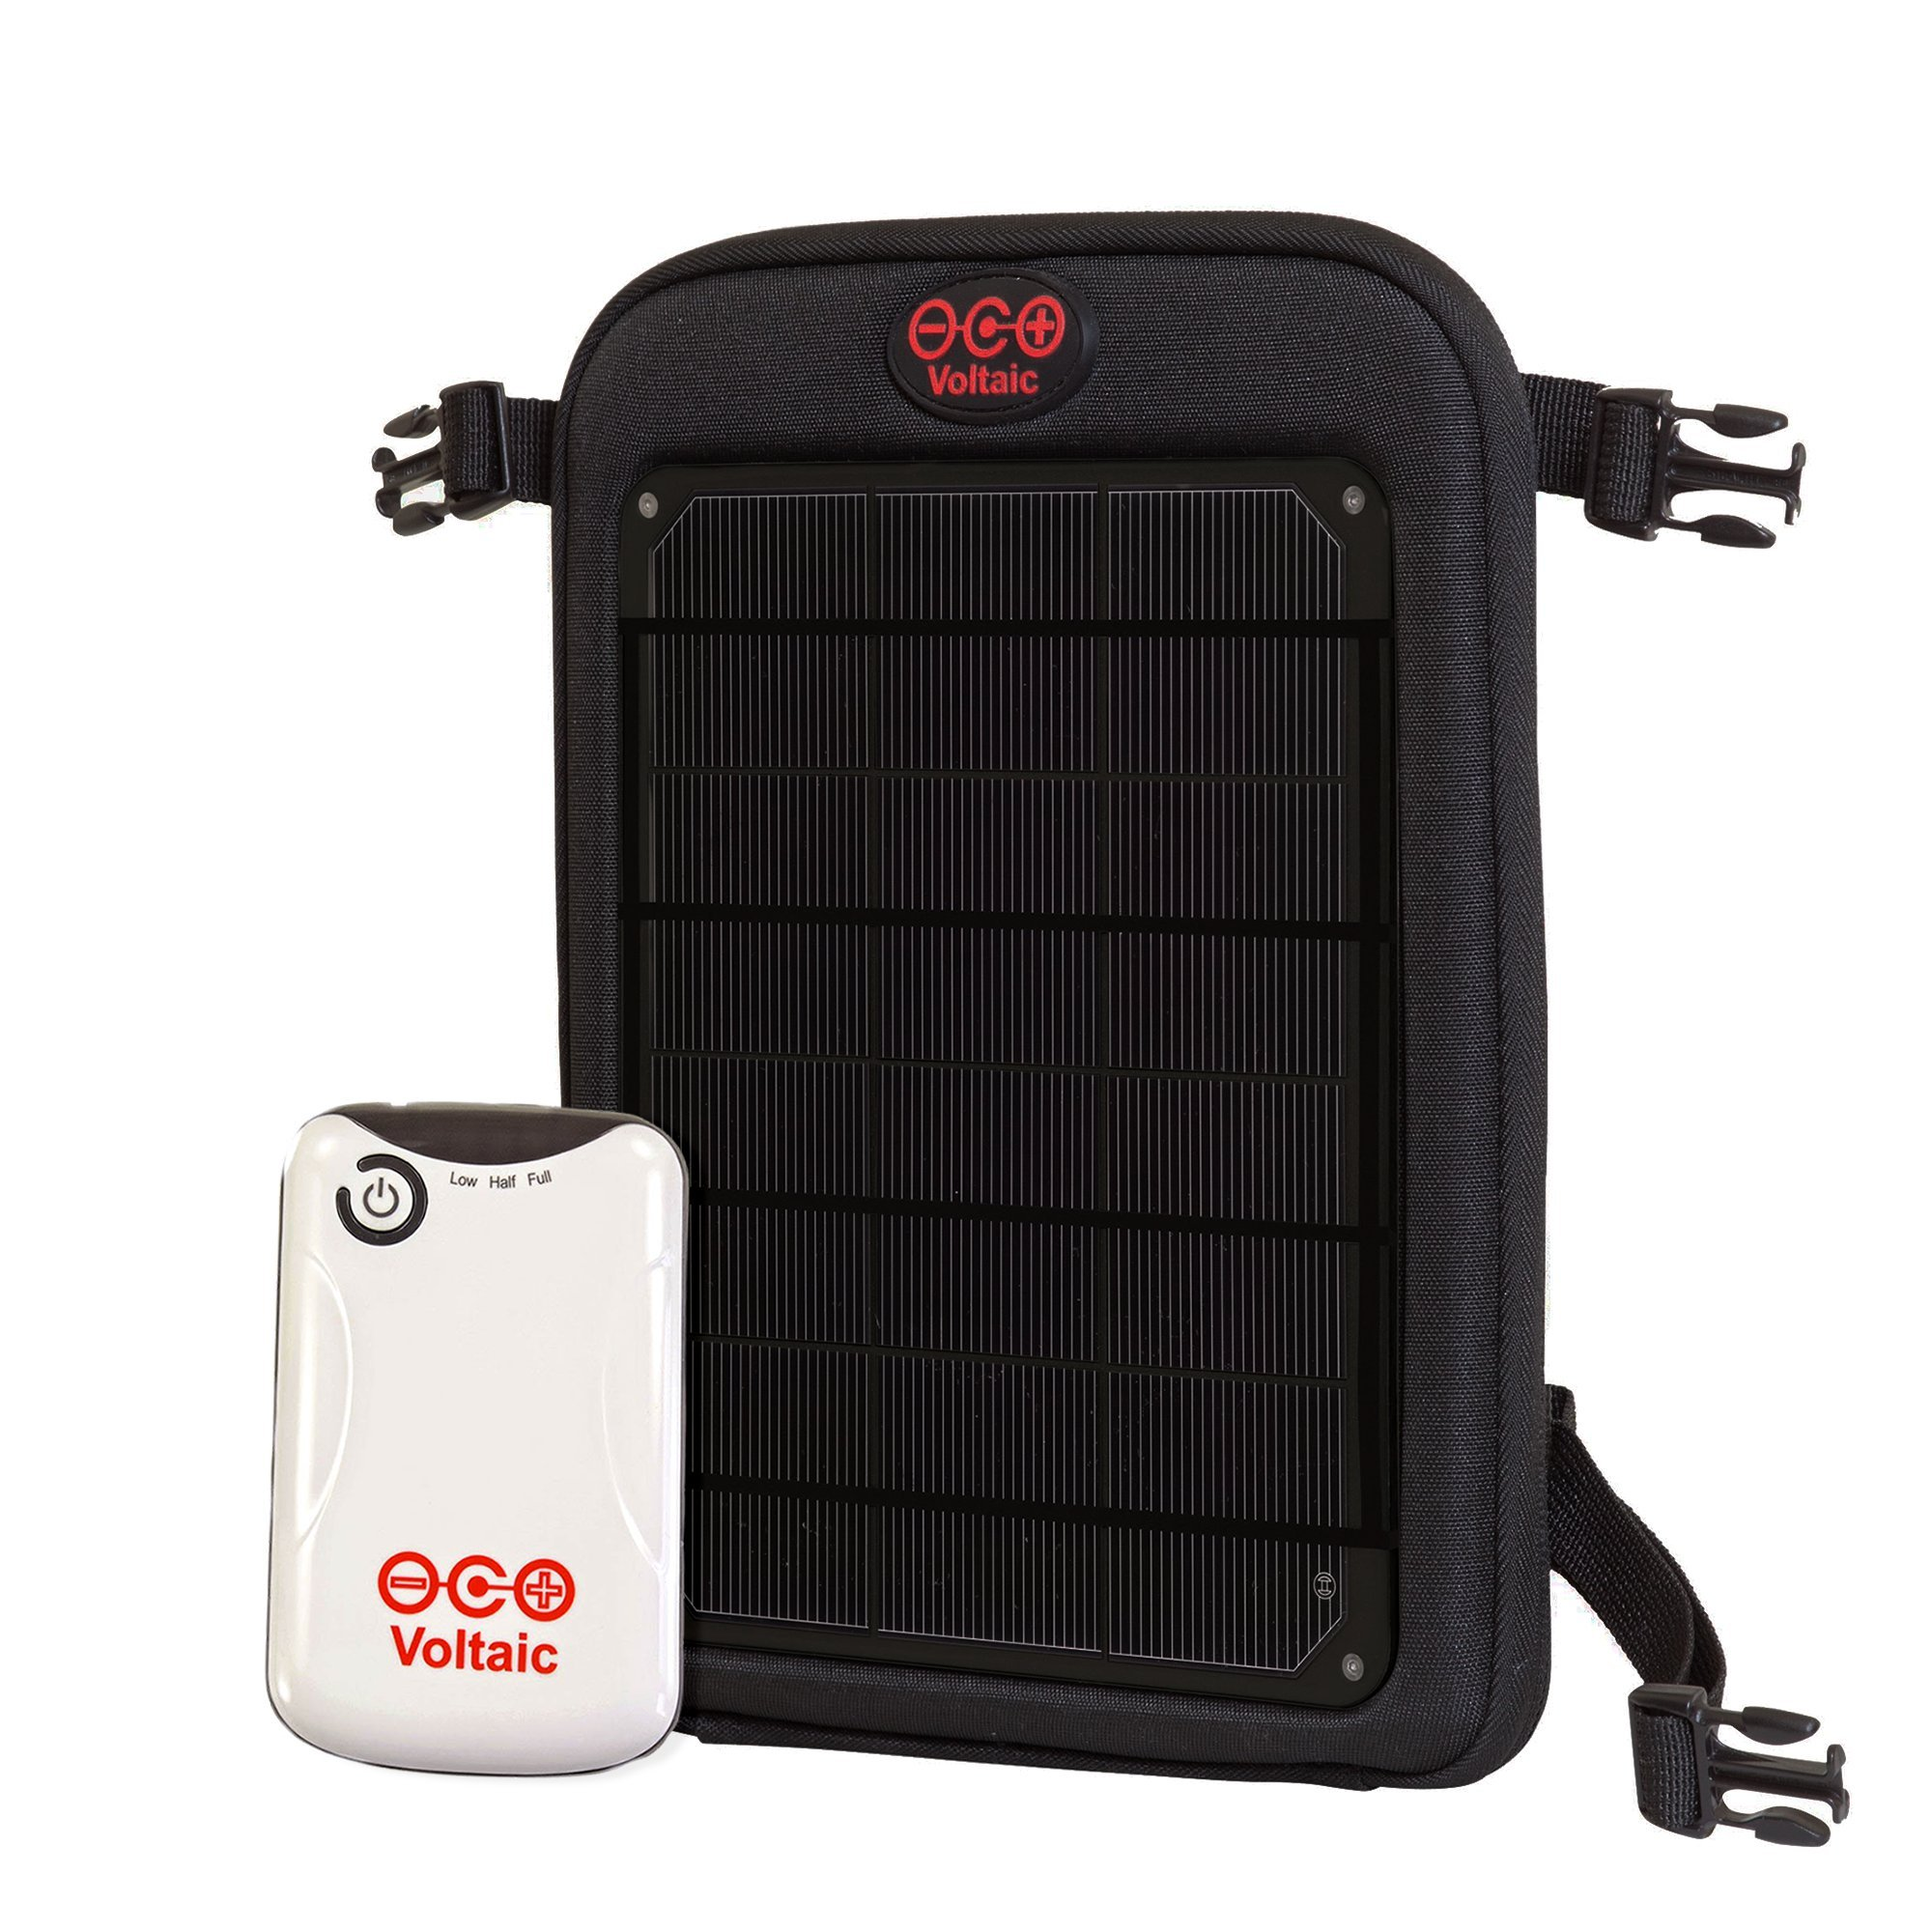 Voltaic Systems - Fuse 6 Watt USB Solar Charger with Backup Battery Pack - Charcoal | Powers Phones, Tablets, DSLR cameras, & More | Charges Your Phone as Fast as at Home | Portable Powered Panel